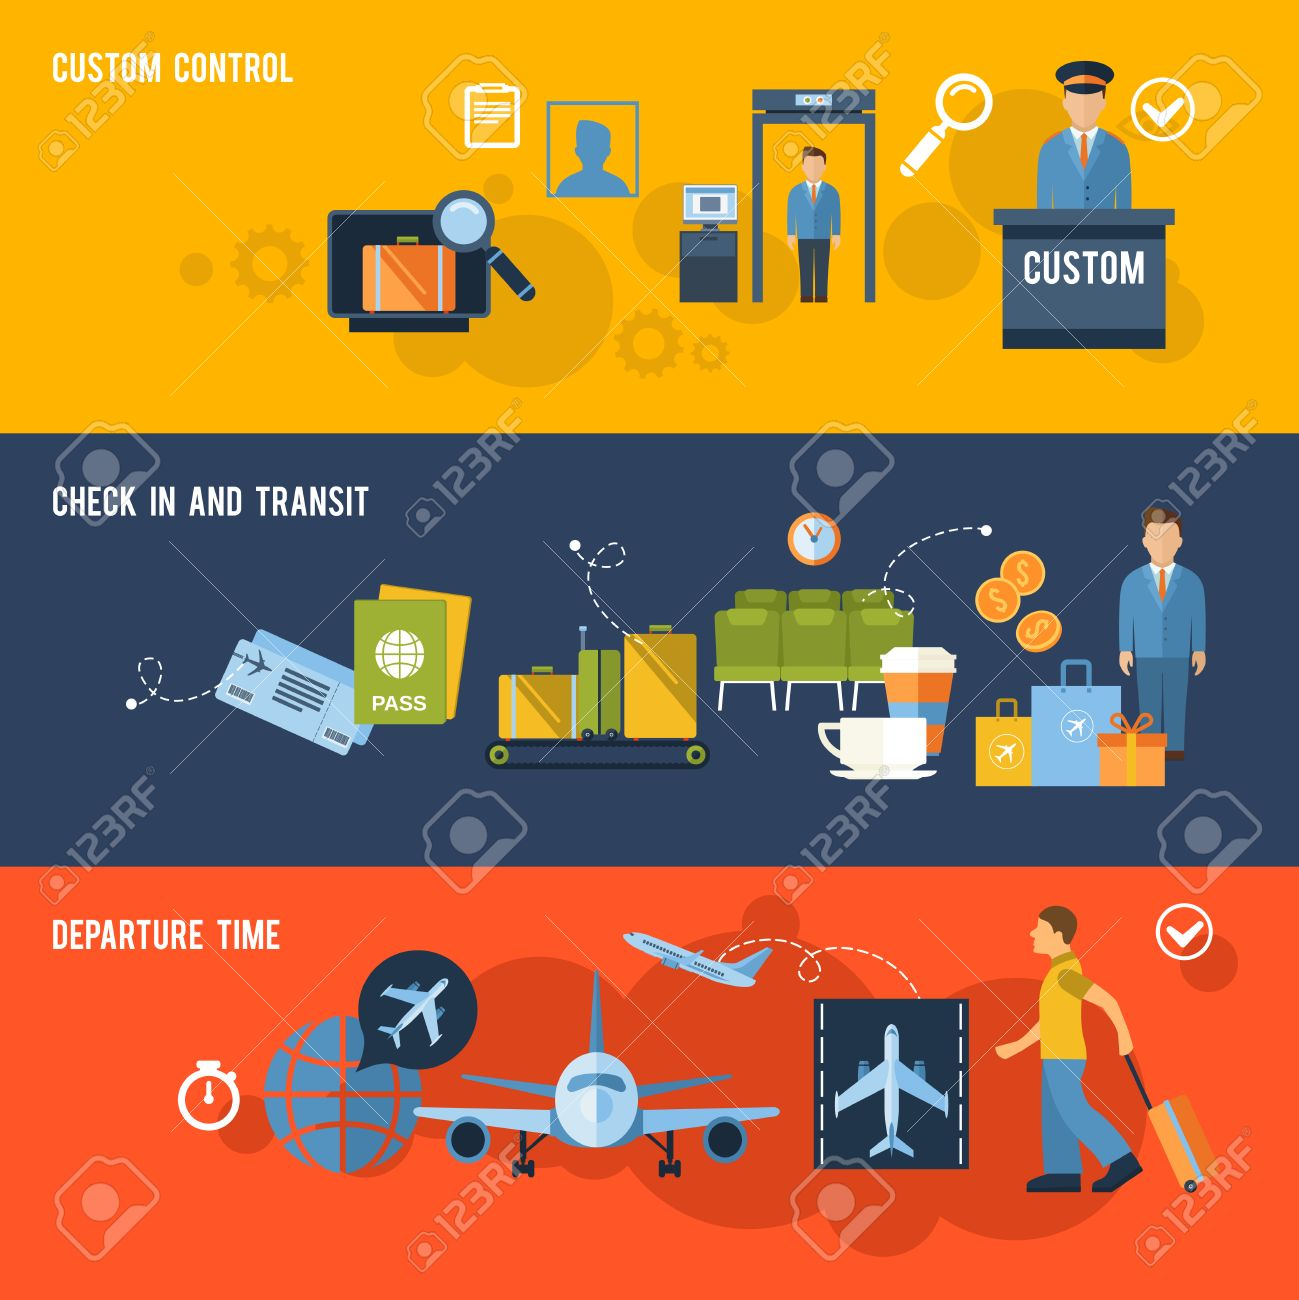 Airport Banner Set With Custom Control Check In And Transit.